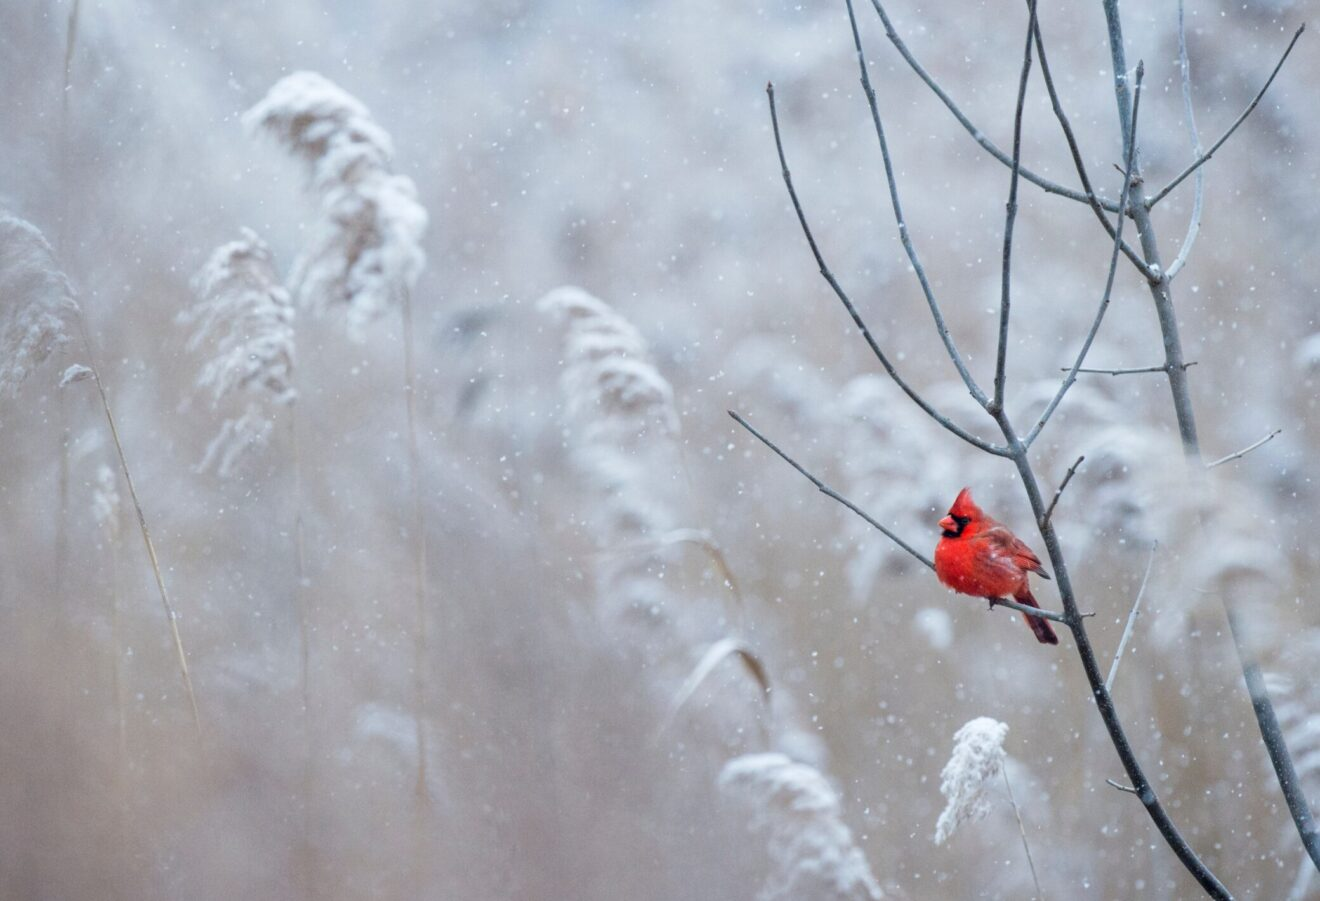 Give Birds water in winter